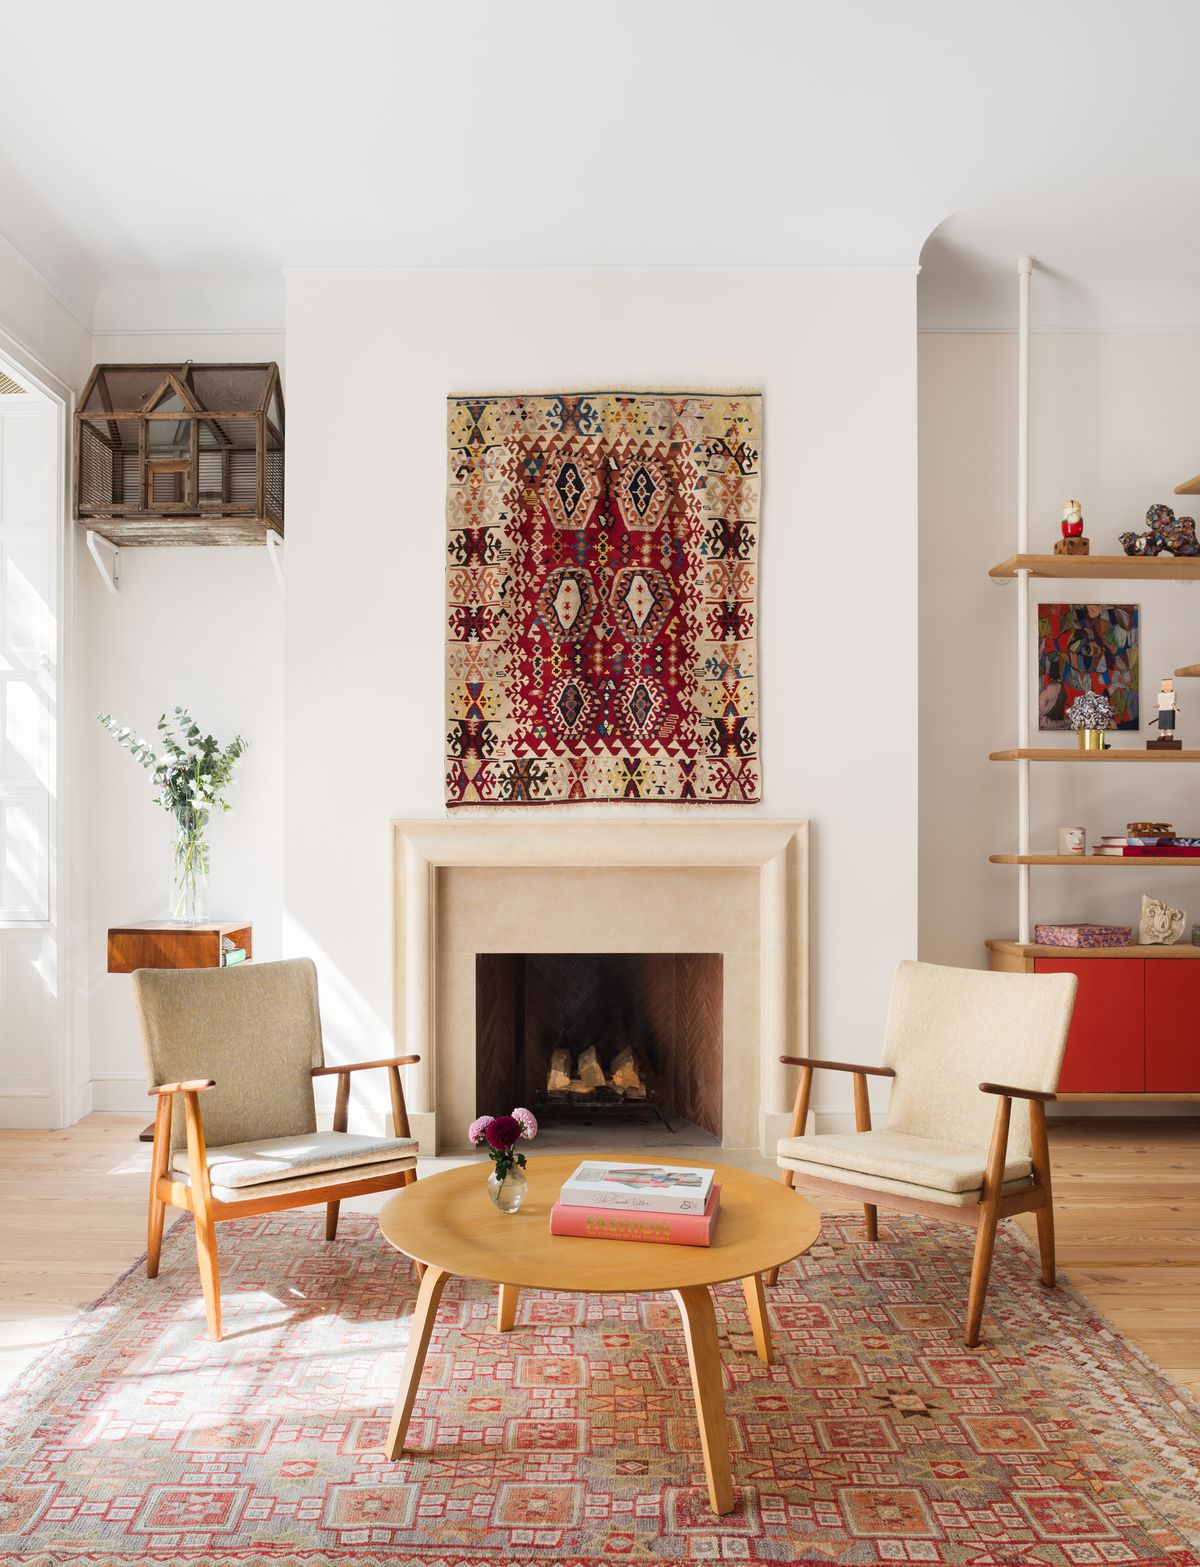 A living area. There is a fireplace. Over the fireplace hangs a patterned tapestry. In front of the fireplace are two tan chairs and a wooden coffee table. There is a patterned area rug under the table and chairs. There are shelves with objects next to th